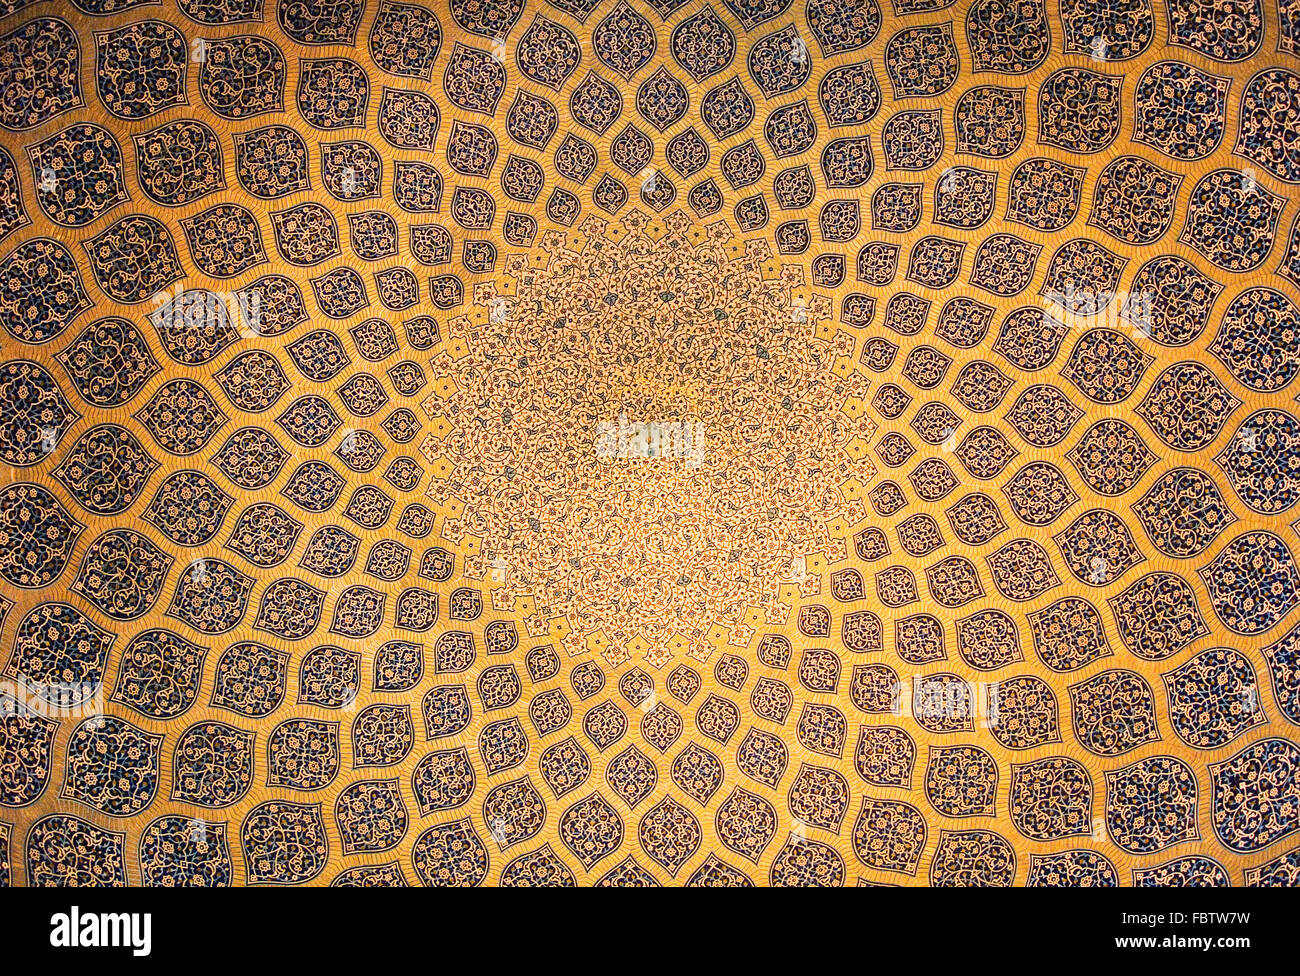 Dome of the mosque, oriental ornaments from Isfahan, Iran - Stock Image